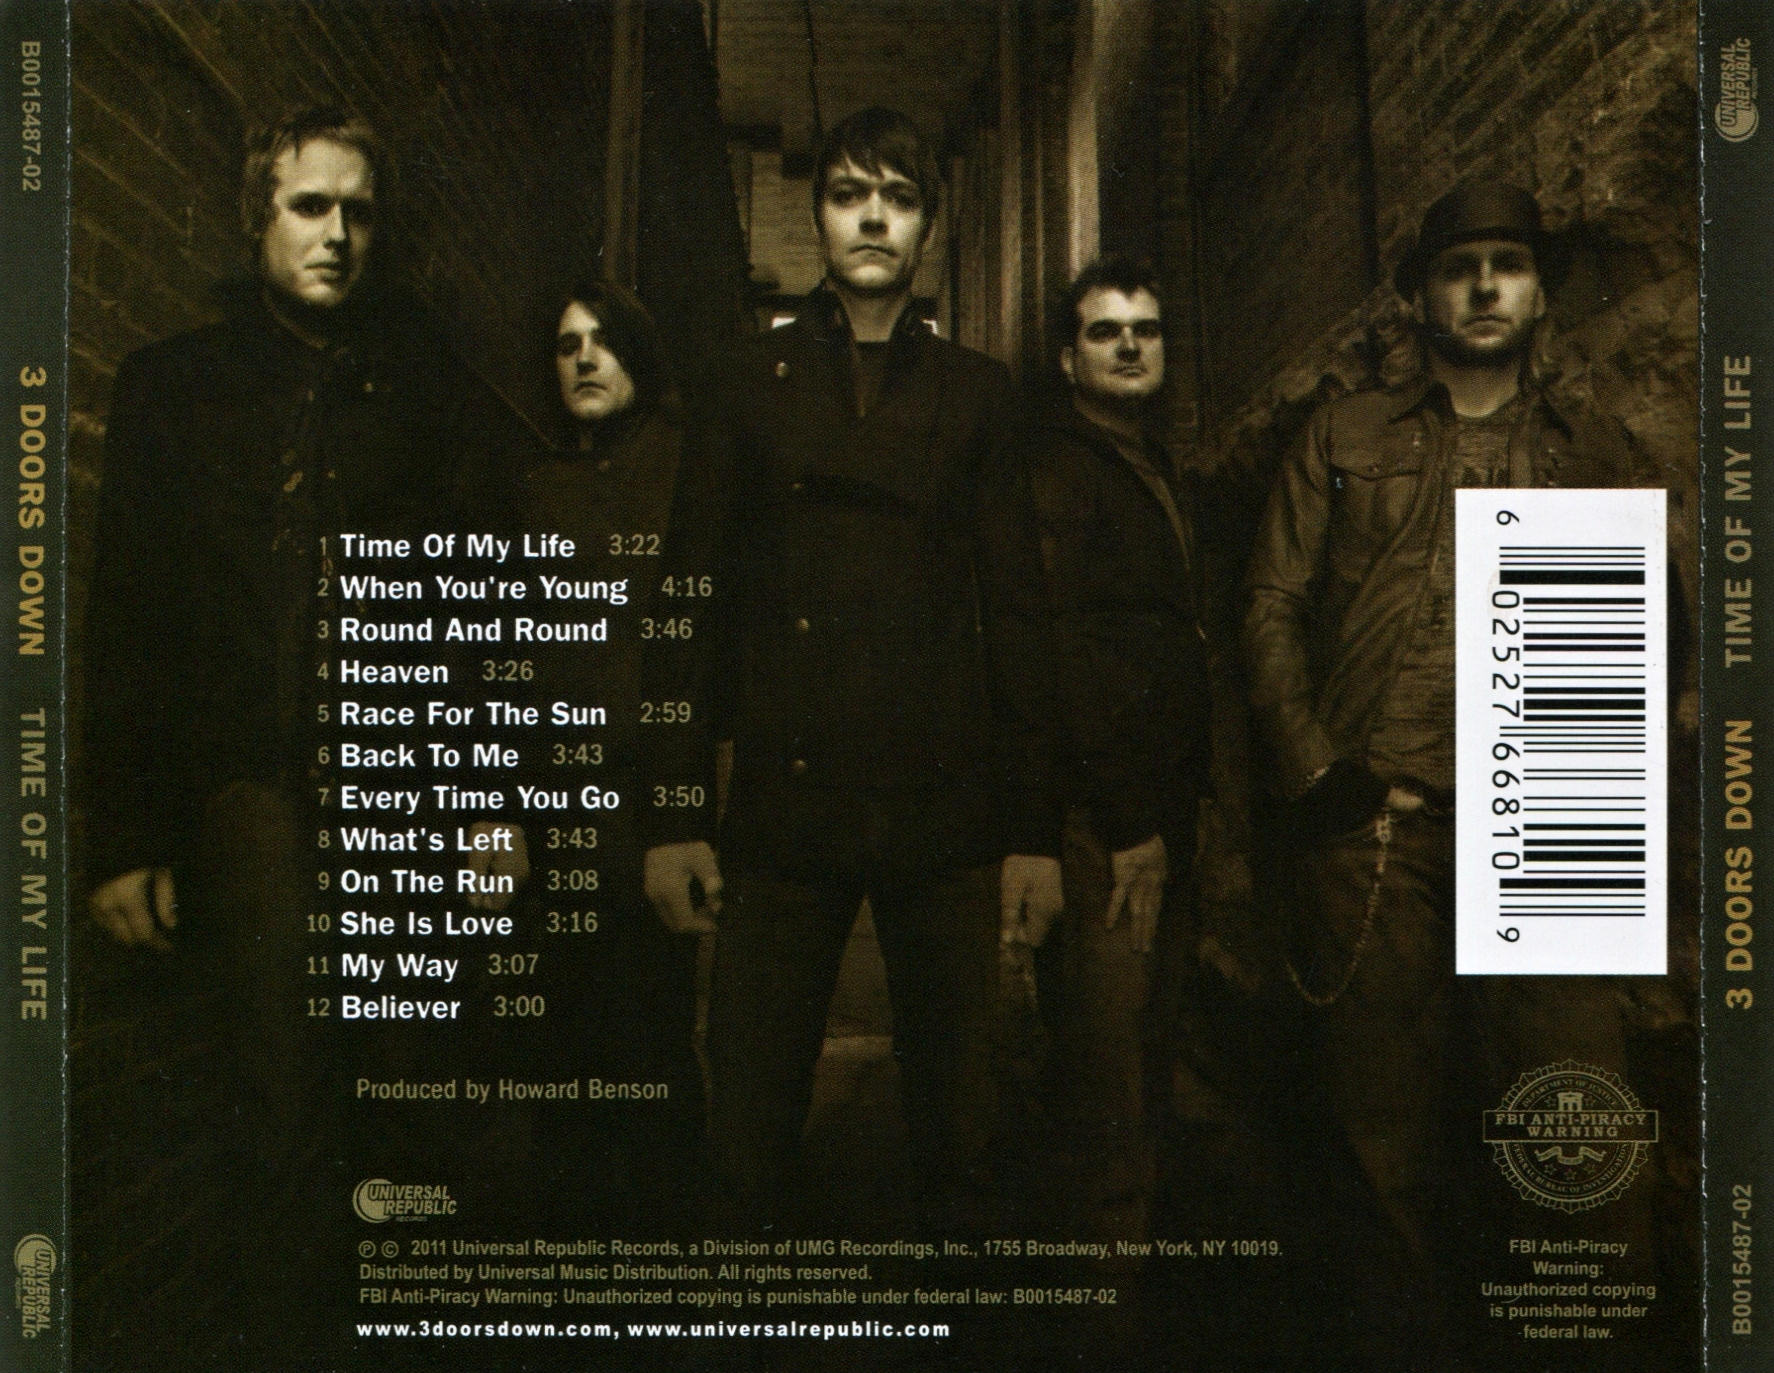 Doors Cd Covers 3 Doors Down Time My Life Back Sc 1 St